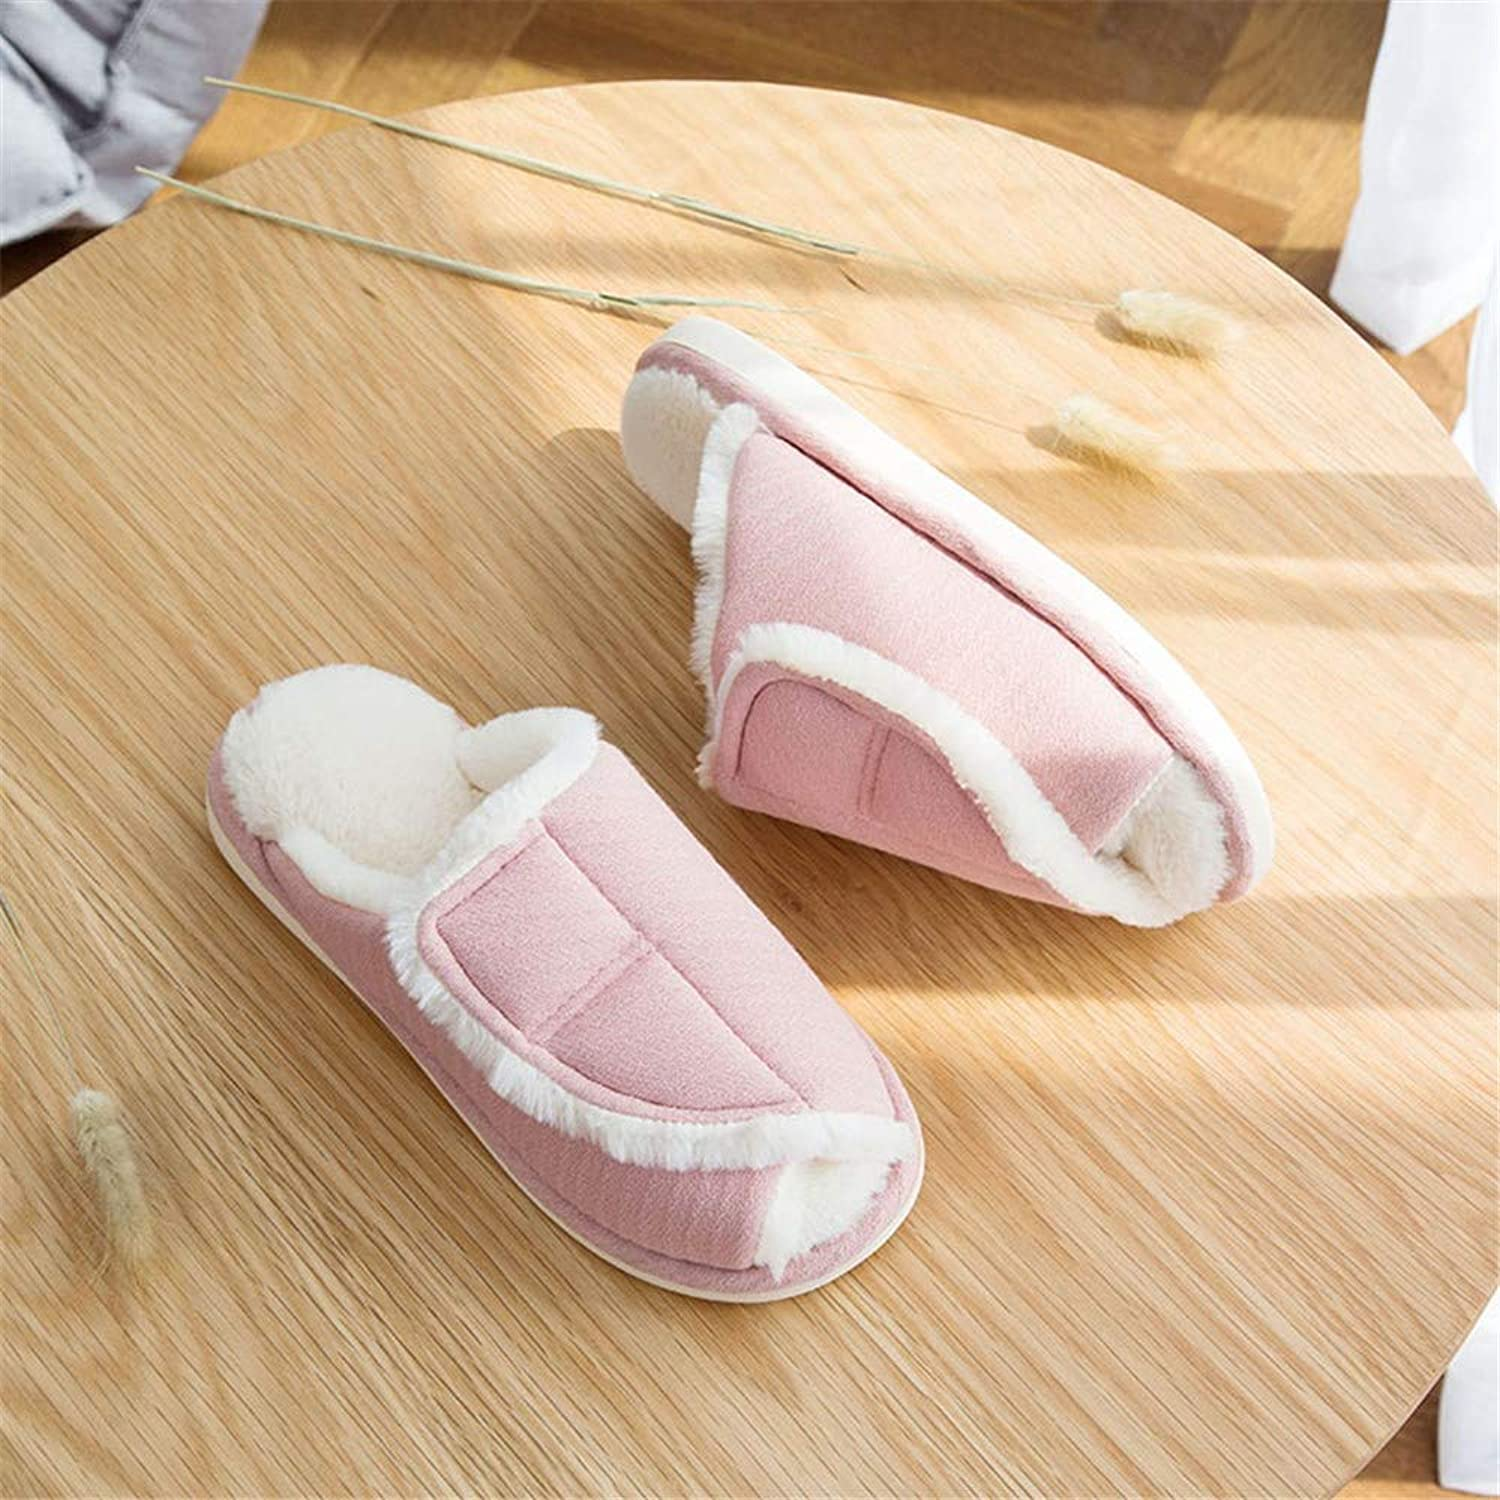 NIGHT WALL Comfortable Slip-on Winter Autumn and Winter Couples Simple Velcro Open Cotton slippersnon-Slip Warm Home Men's shoes, 2,38House shoes Indoor & Outdoor